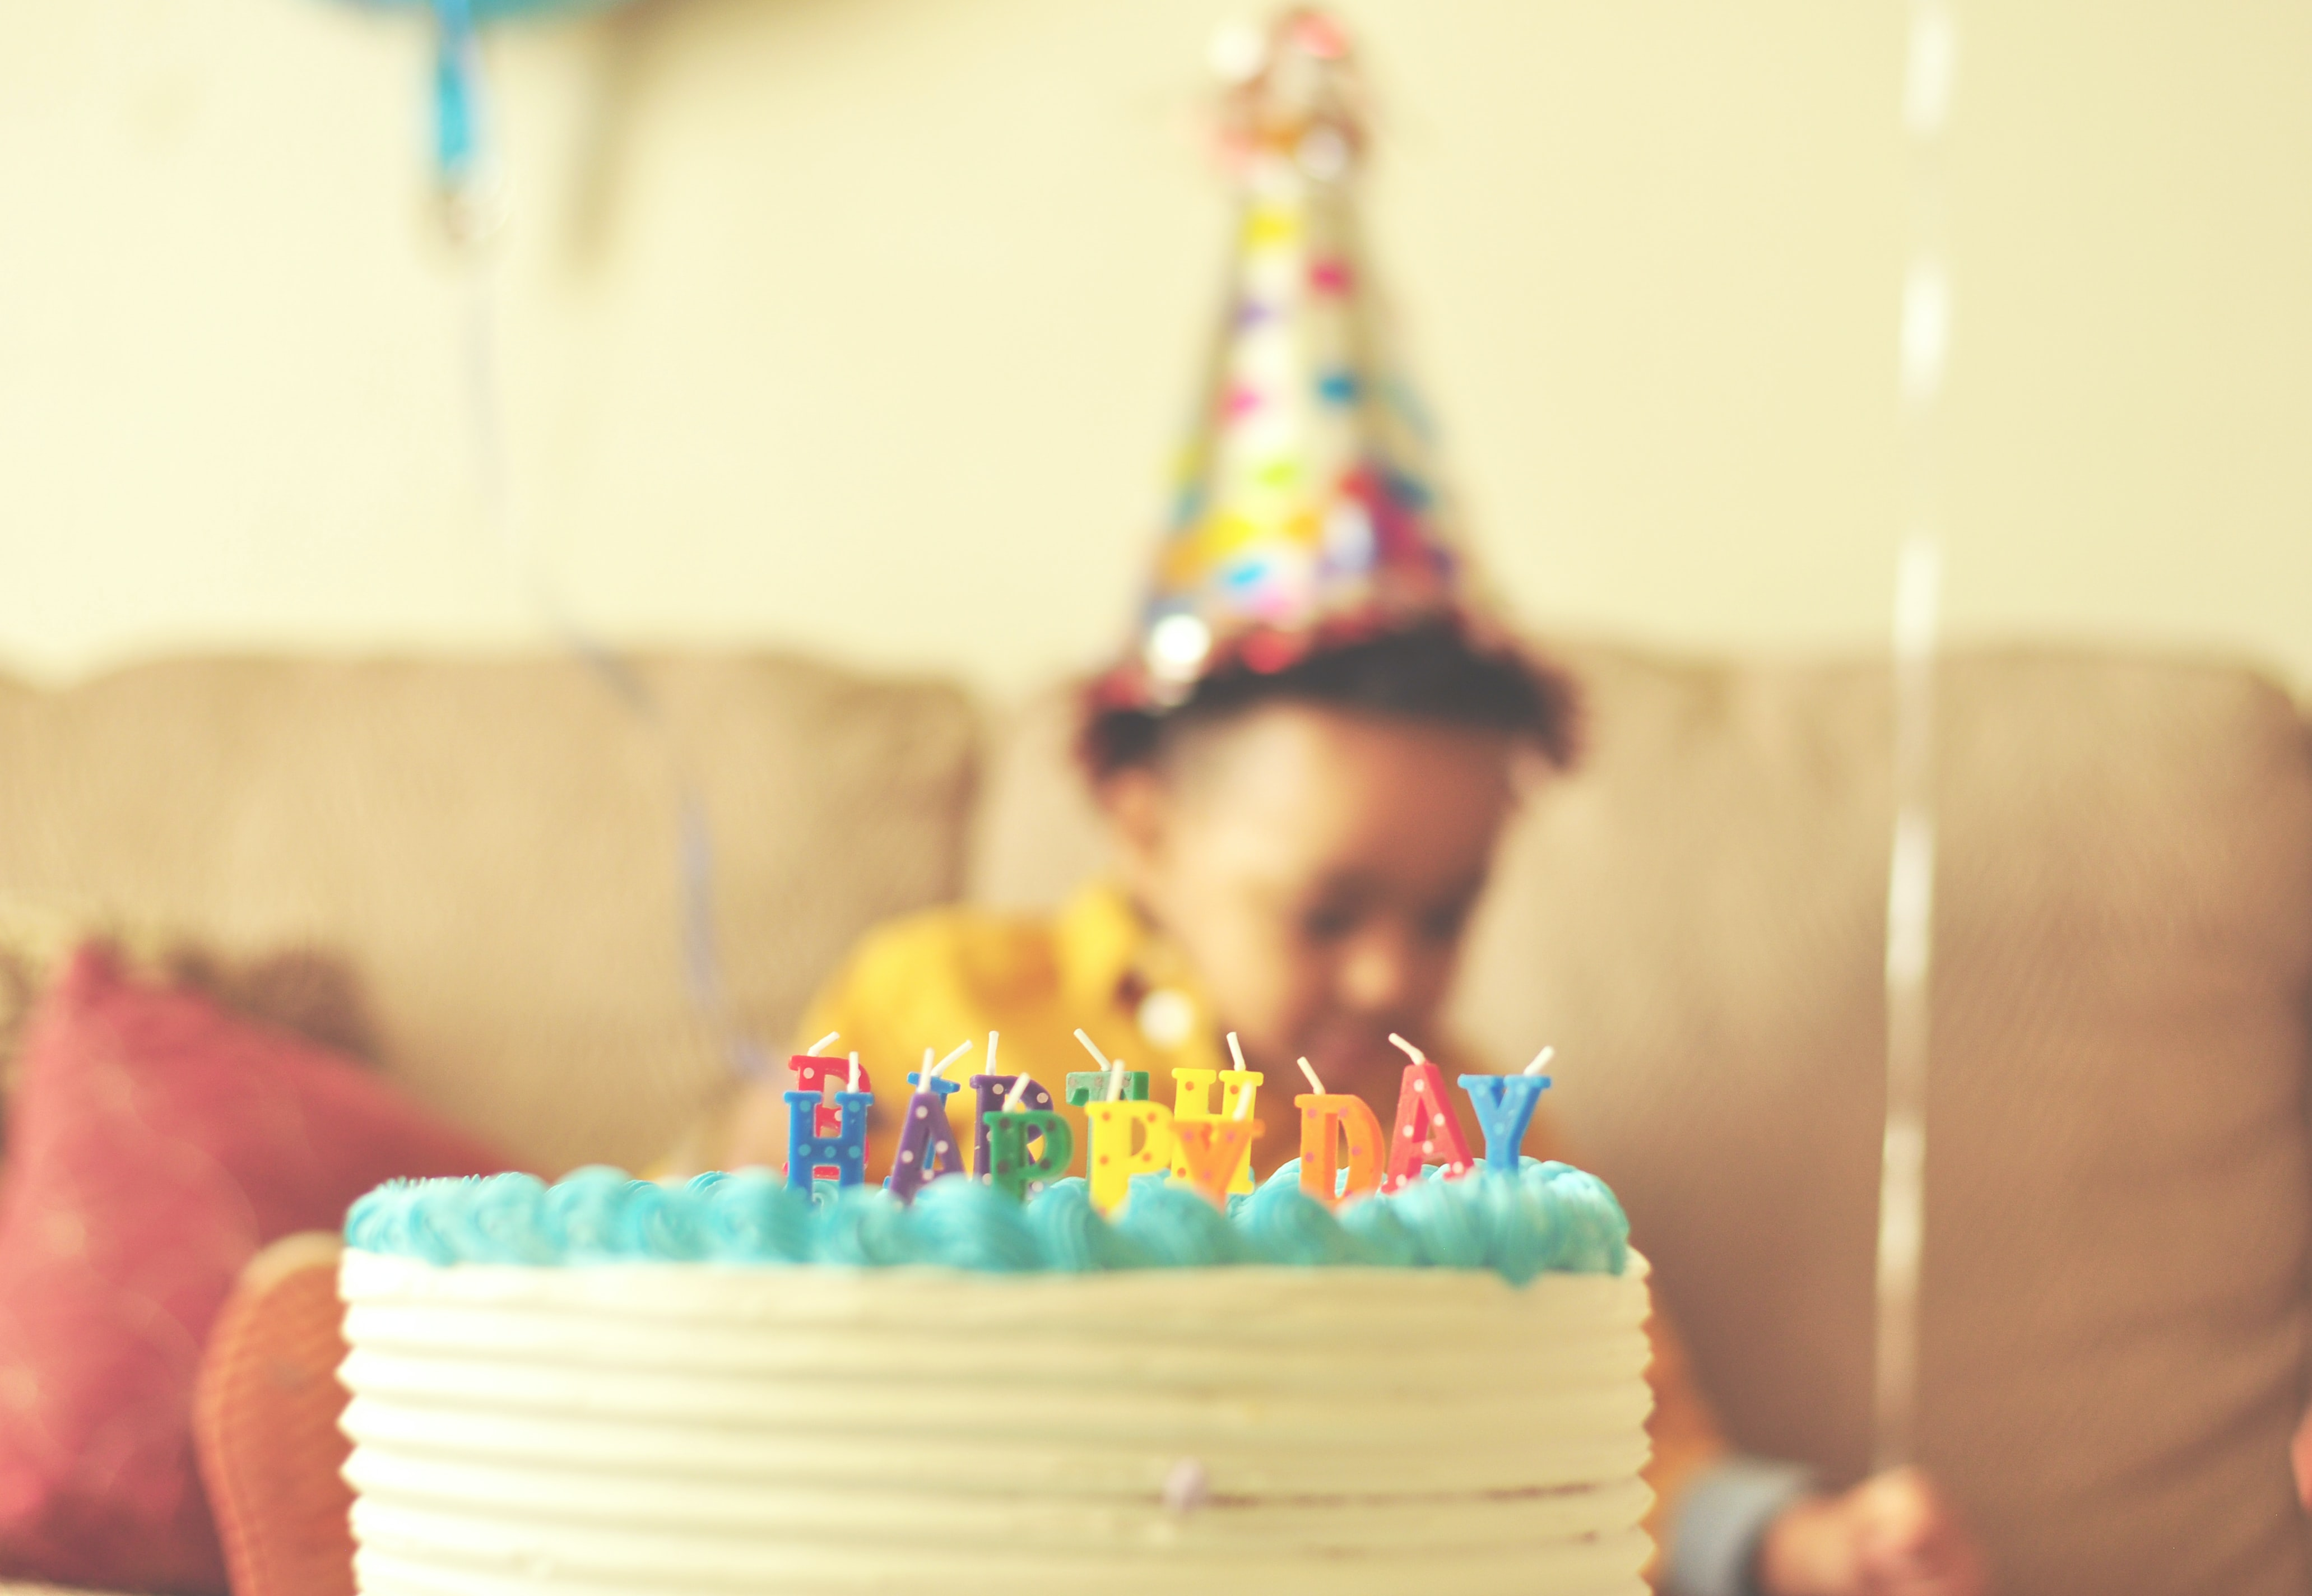 Birthday Candle Pictures Download Free Images On Unsplash